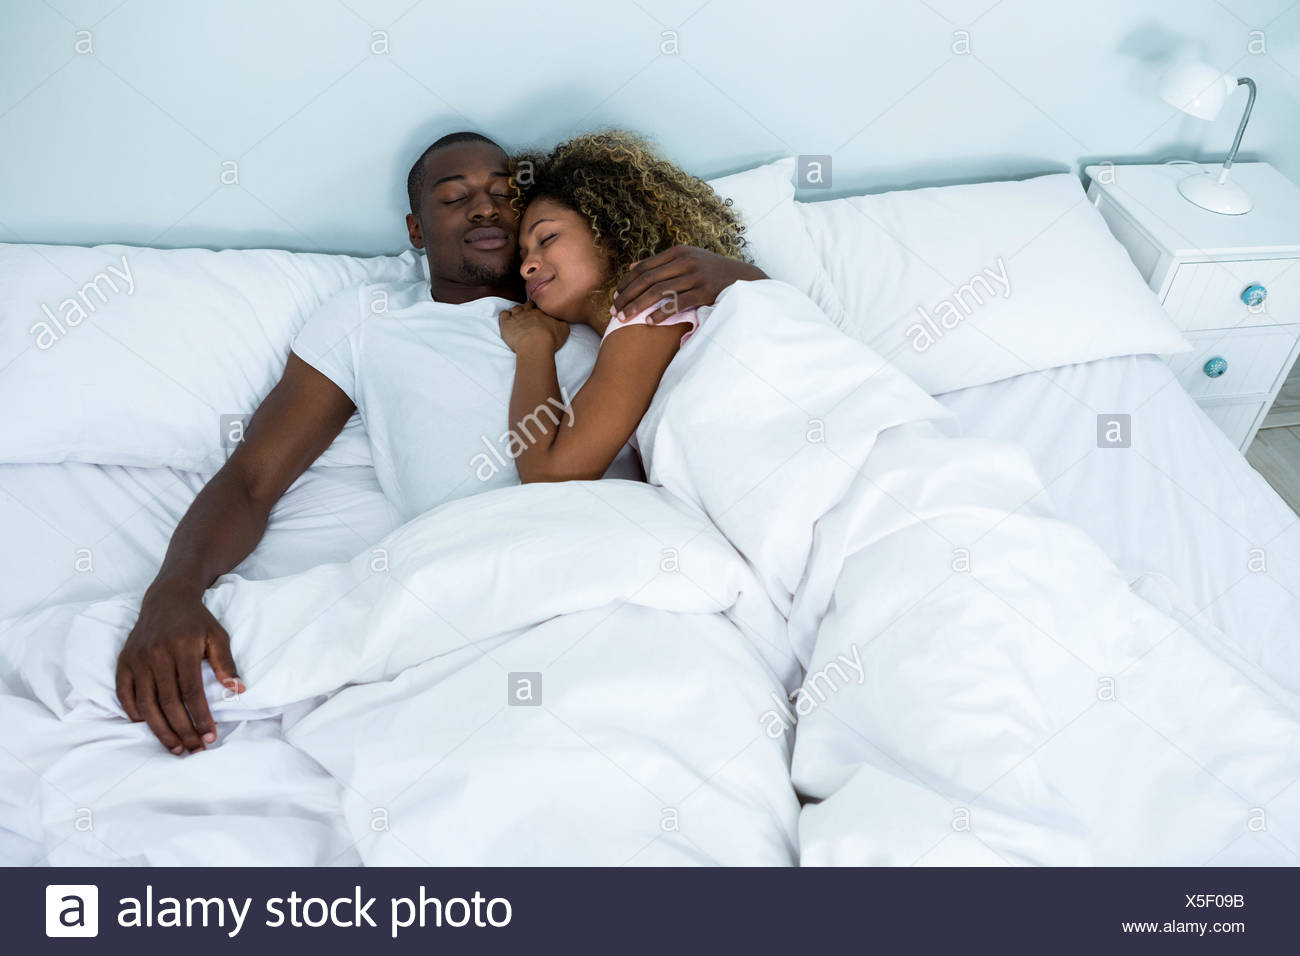 Young couple sleeping together on bed - Stock Image